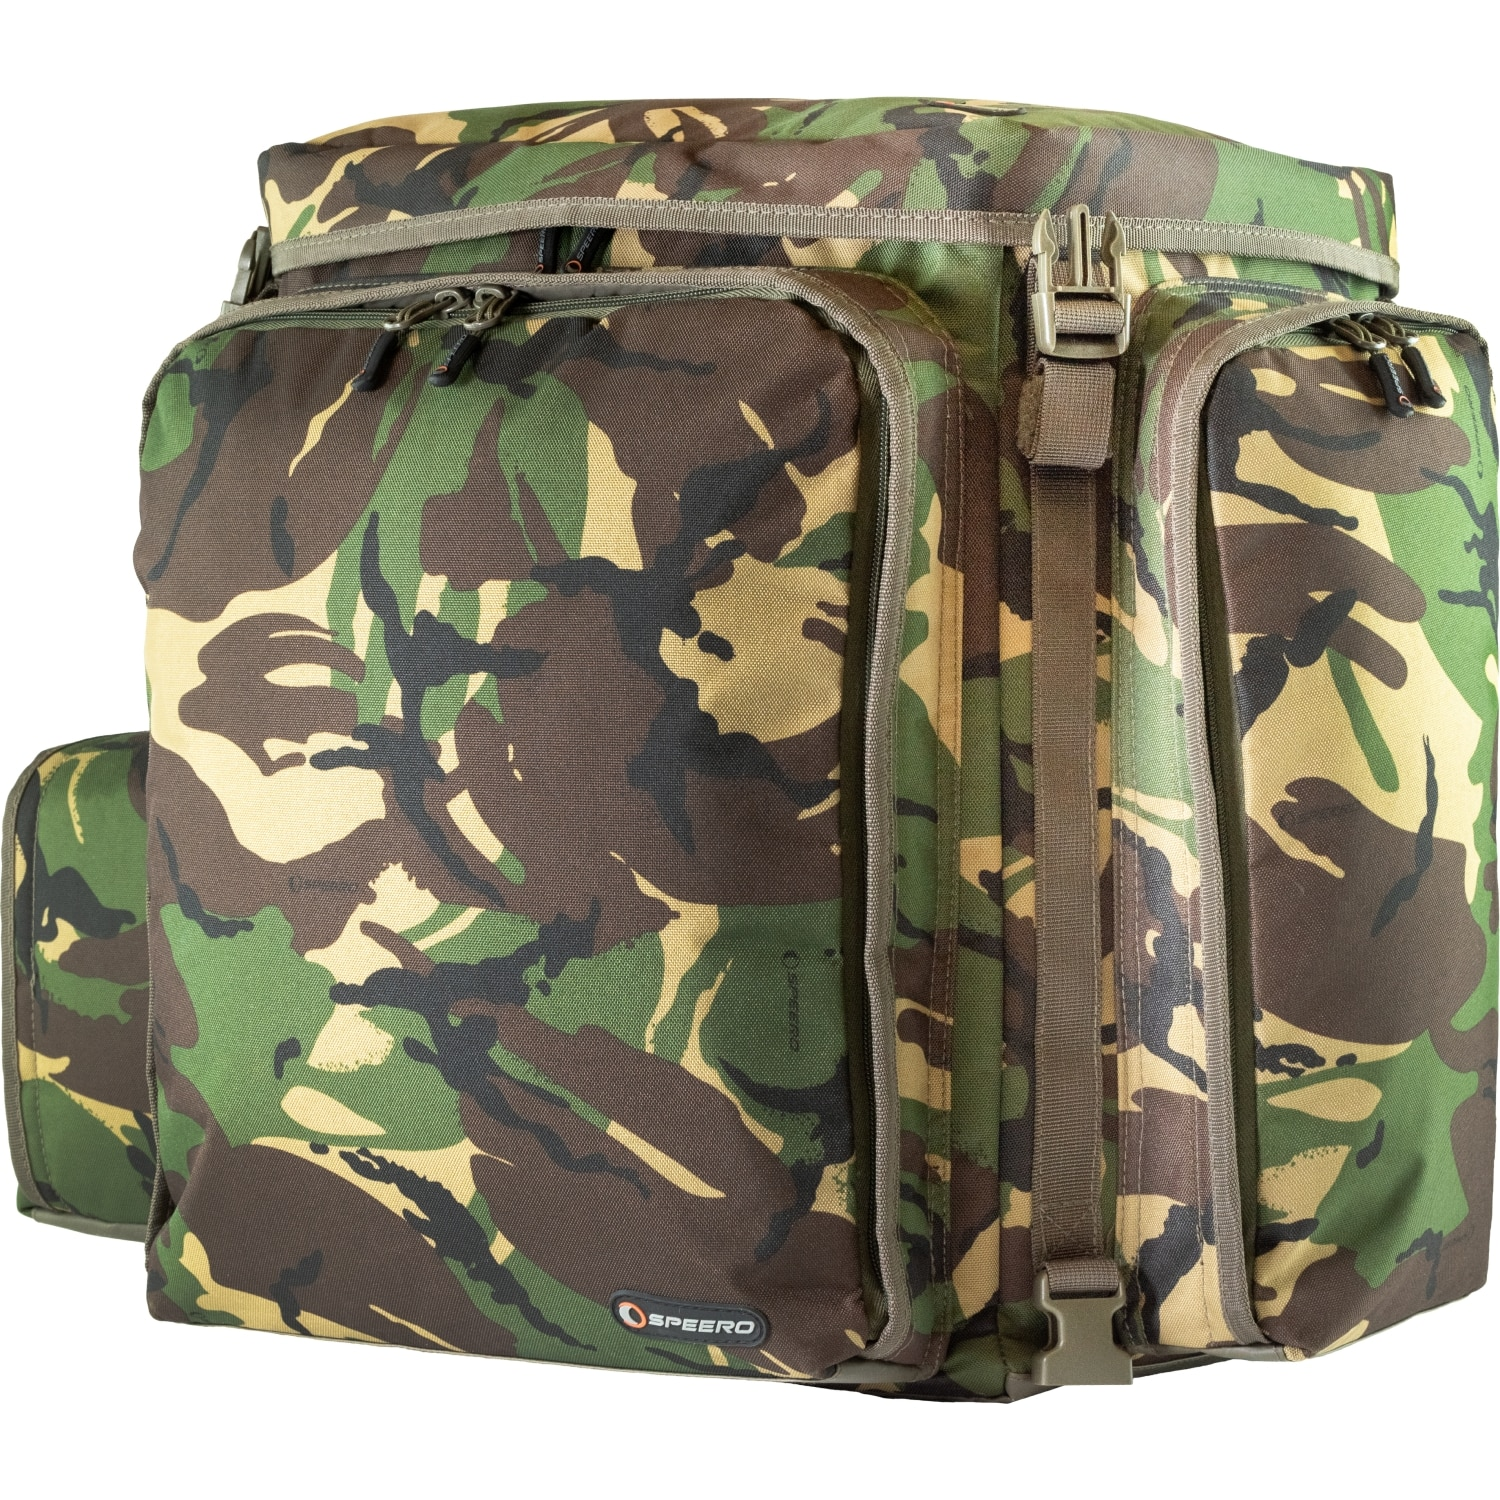 Speero Tackle Rucksack DPM